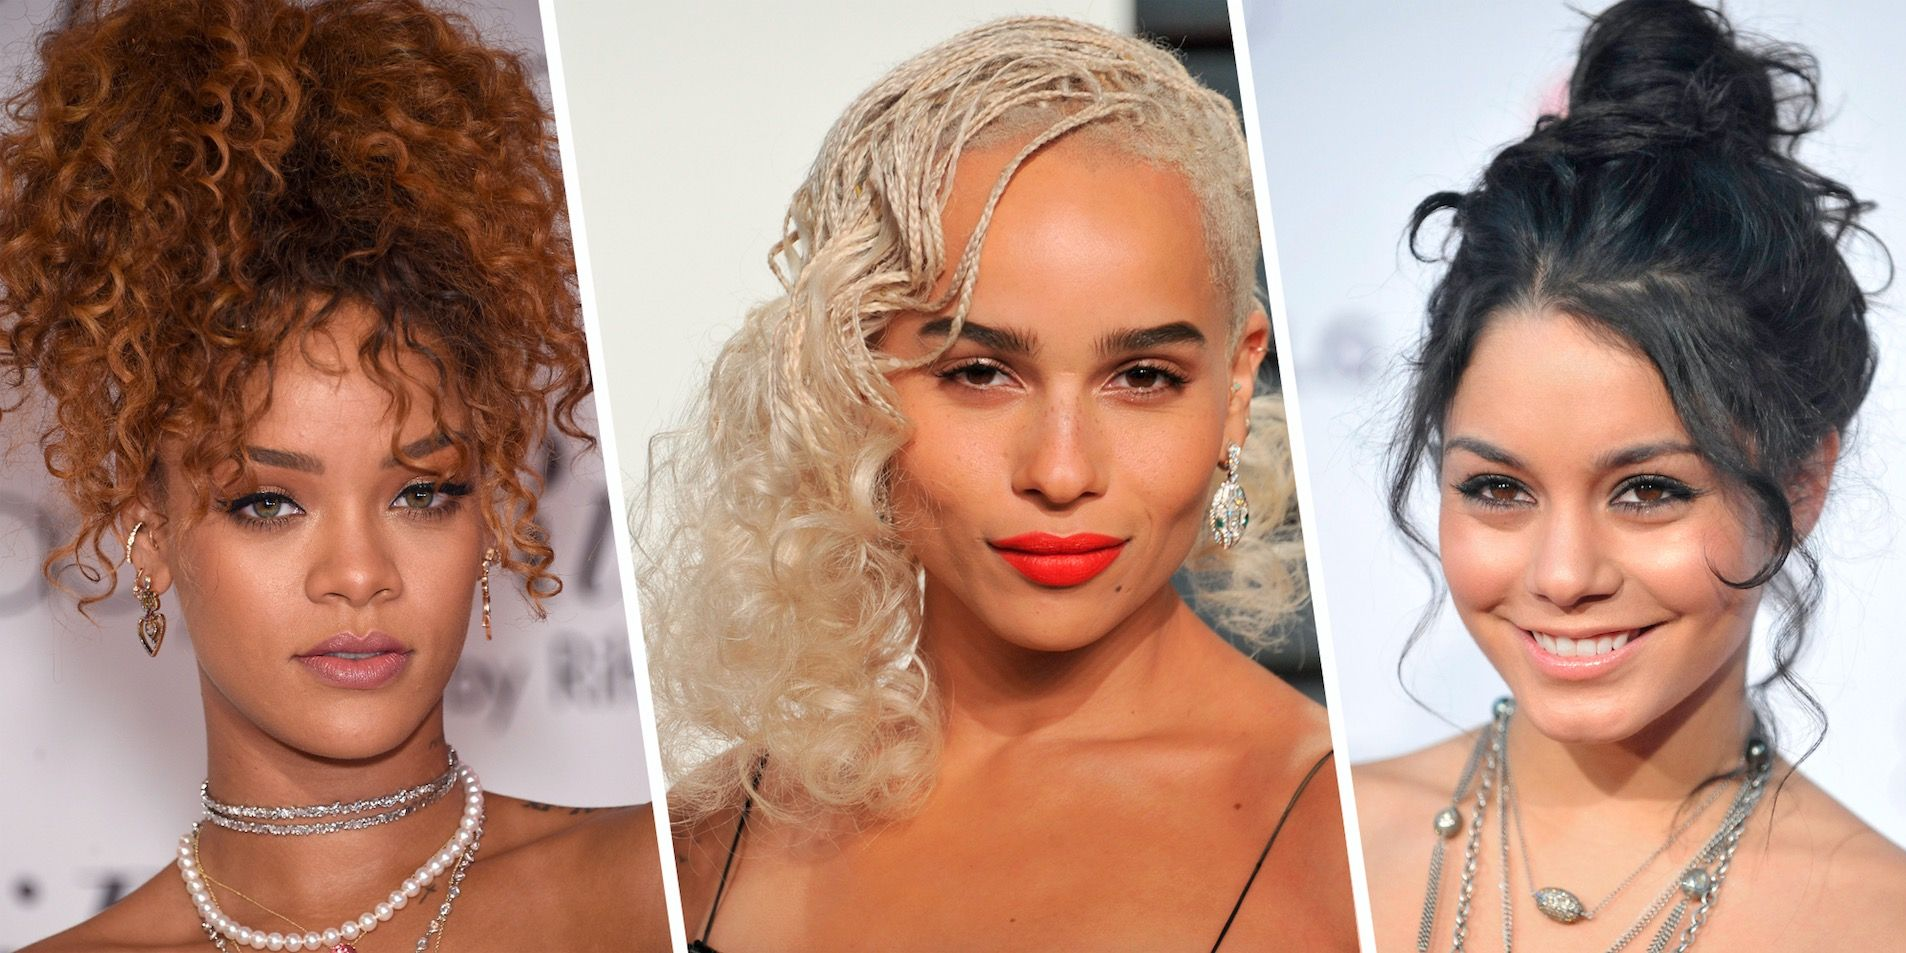 Hairstyles Over 40 2019: 40+ Styles For Every Type Of Curl